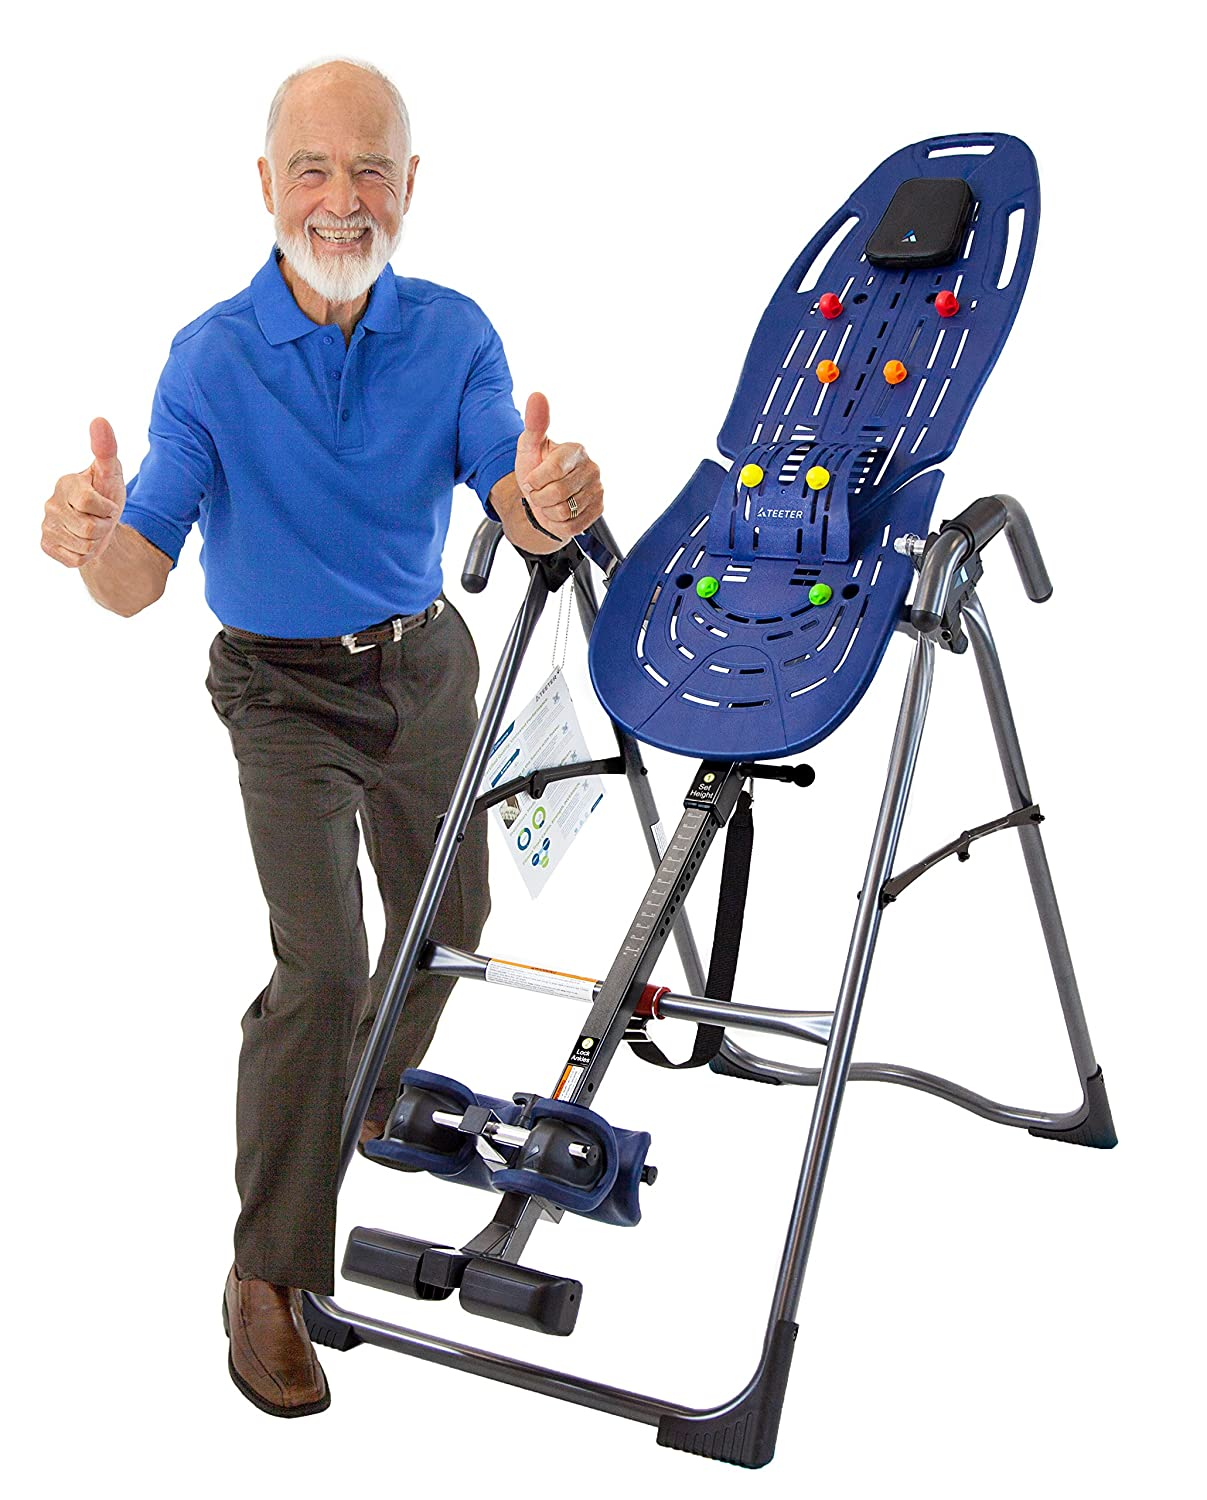 Amazon.com: Teeter EP-560 Inversion Table with Back Pain Relief ...